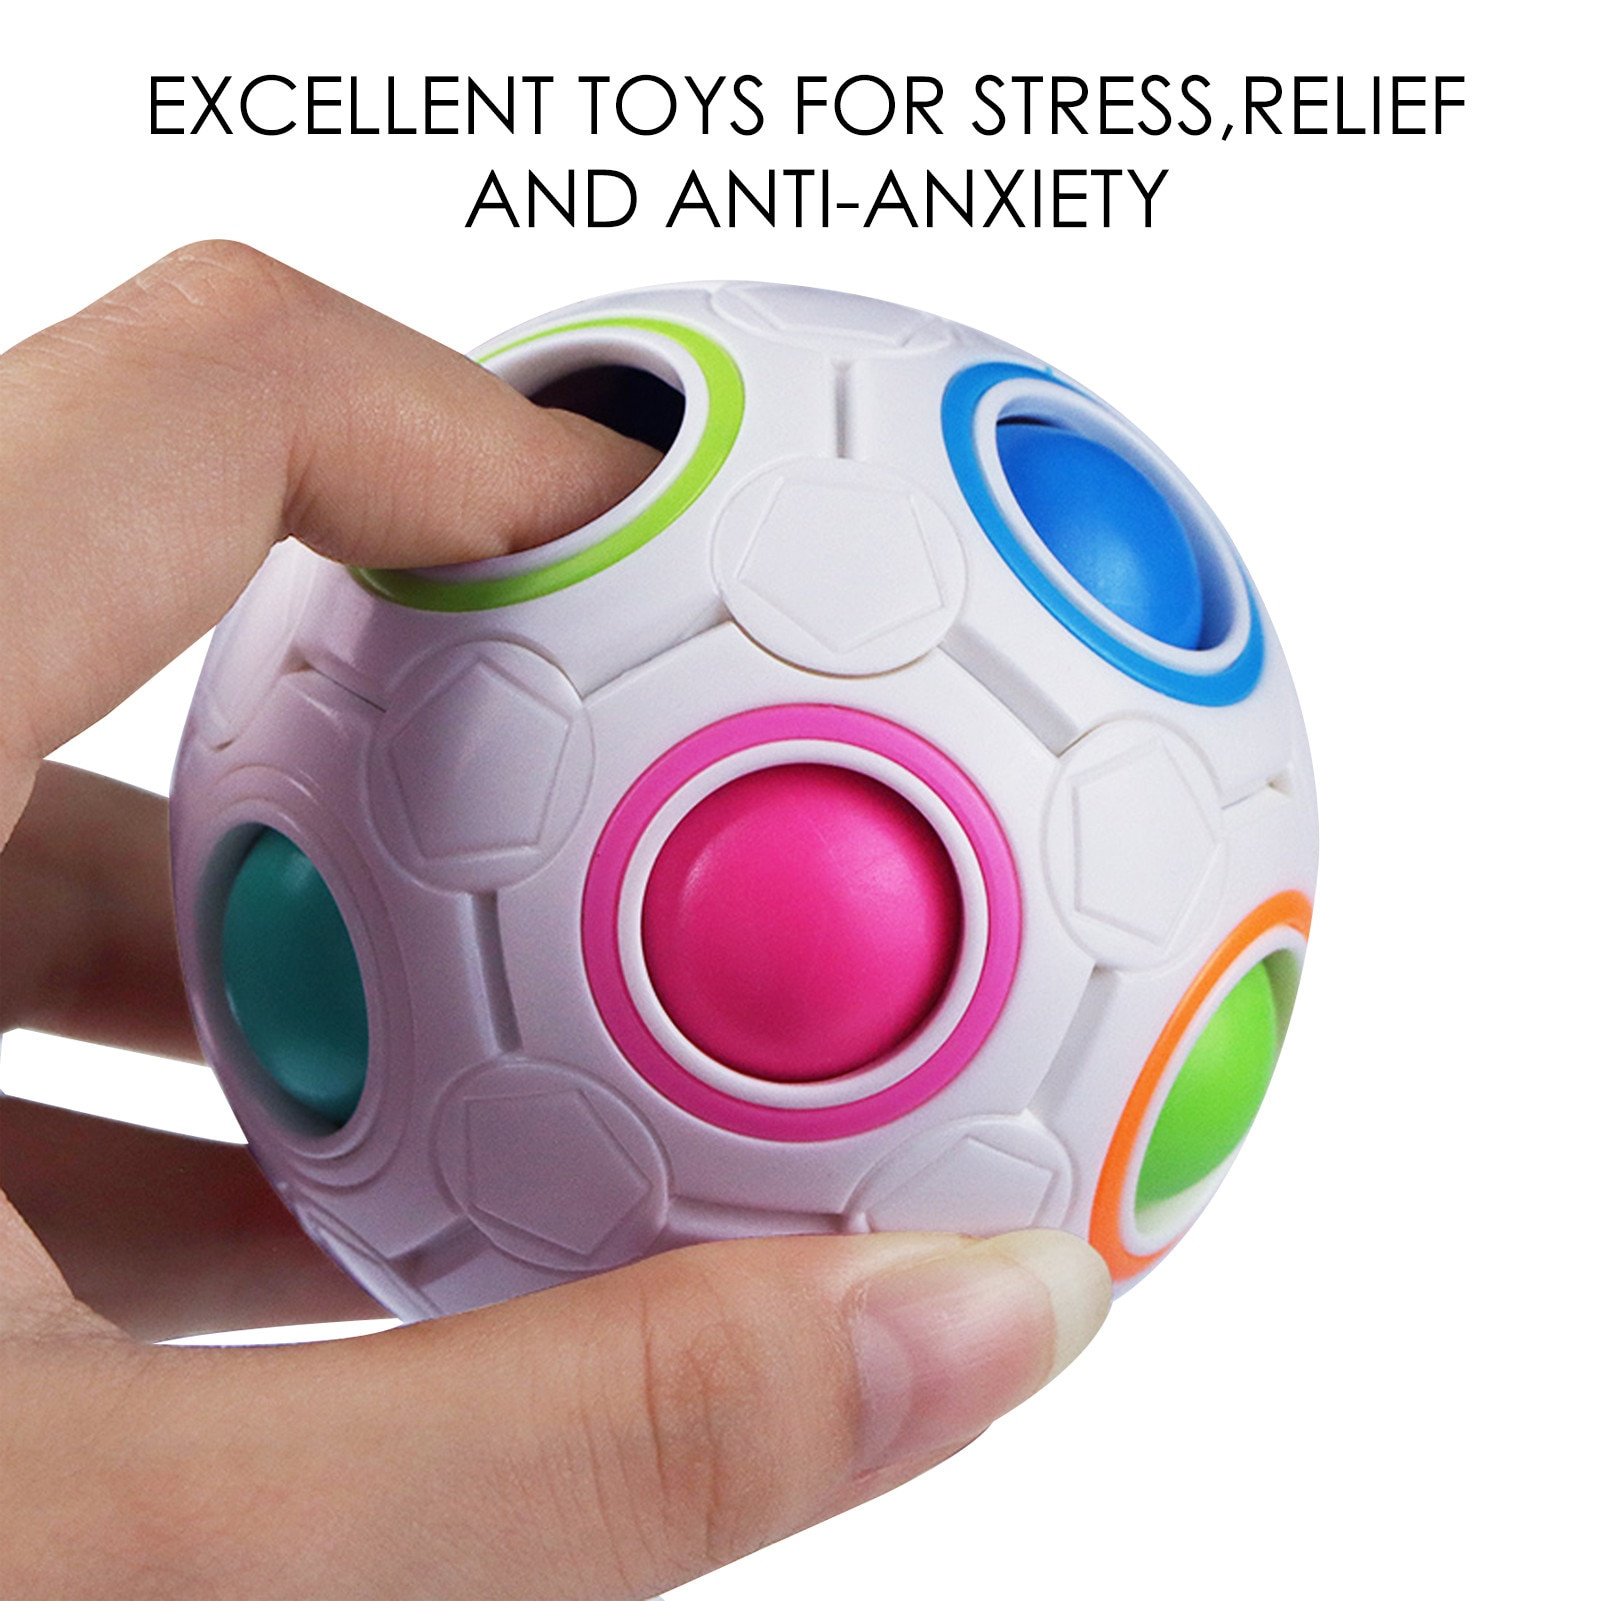 24PCS Fidget Sensory Toy Set Stress Relief Toys Autism Anxiety Relief Stress Pop Bubble Funny Toy For Kids Adults enlarge